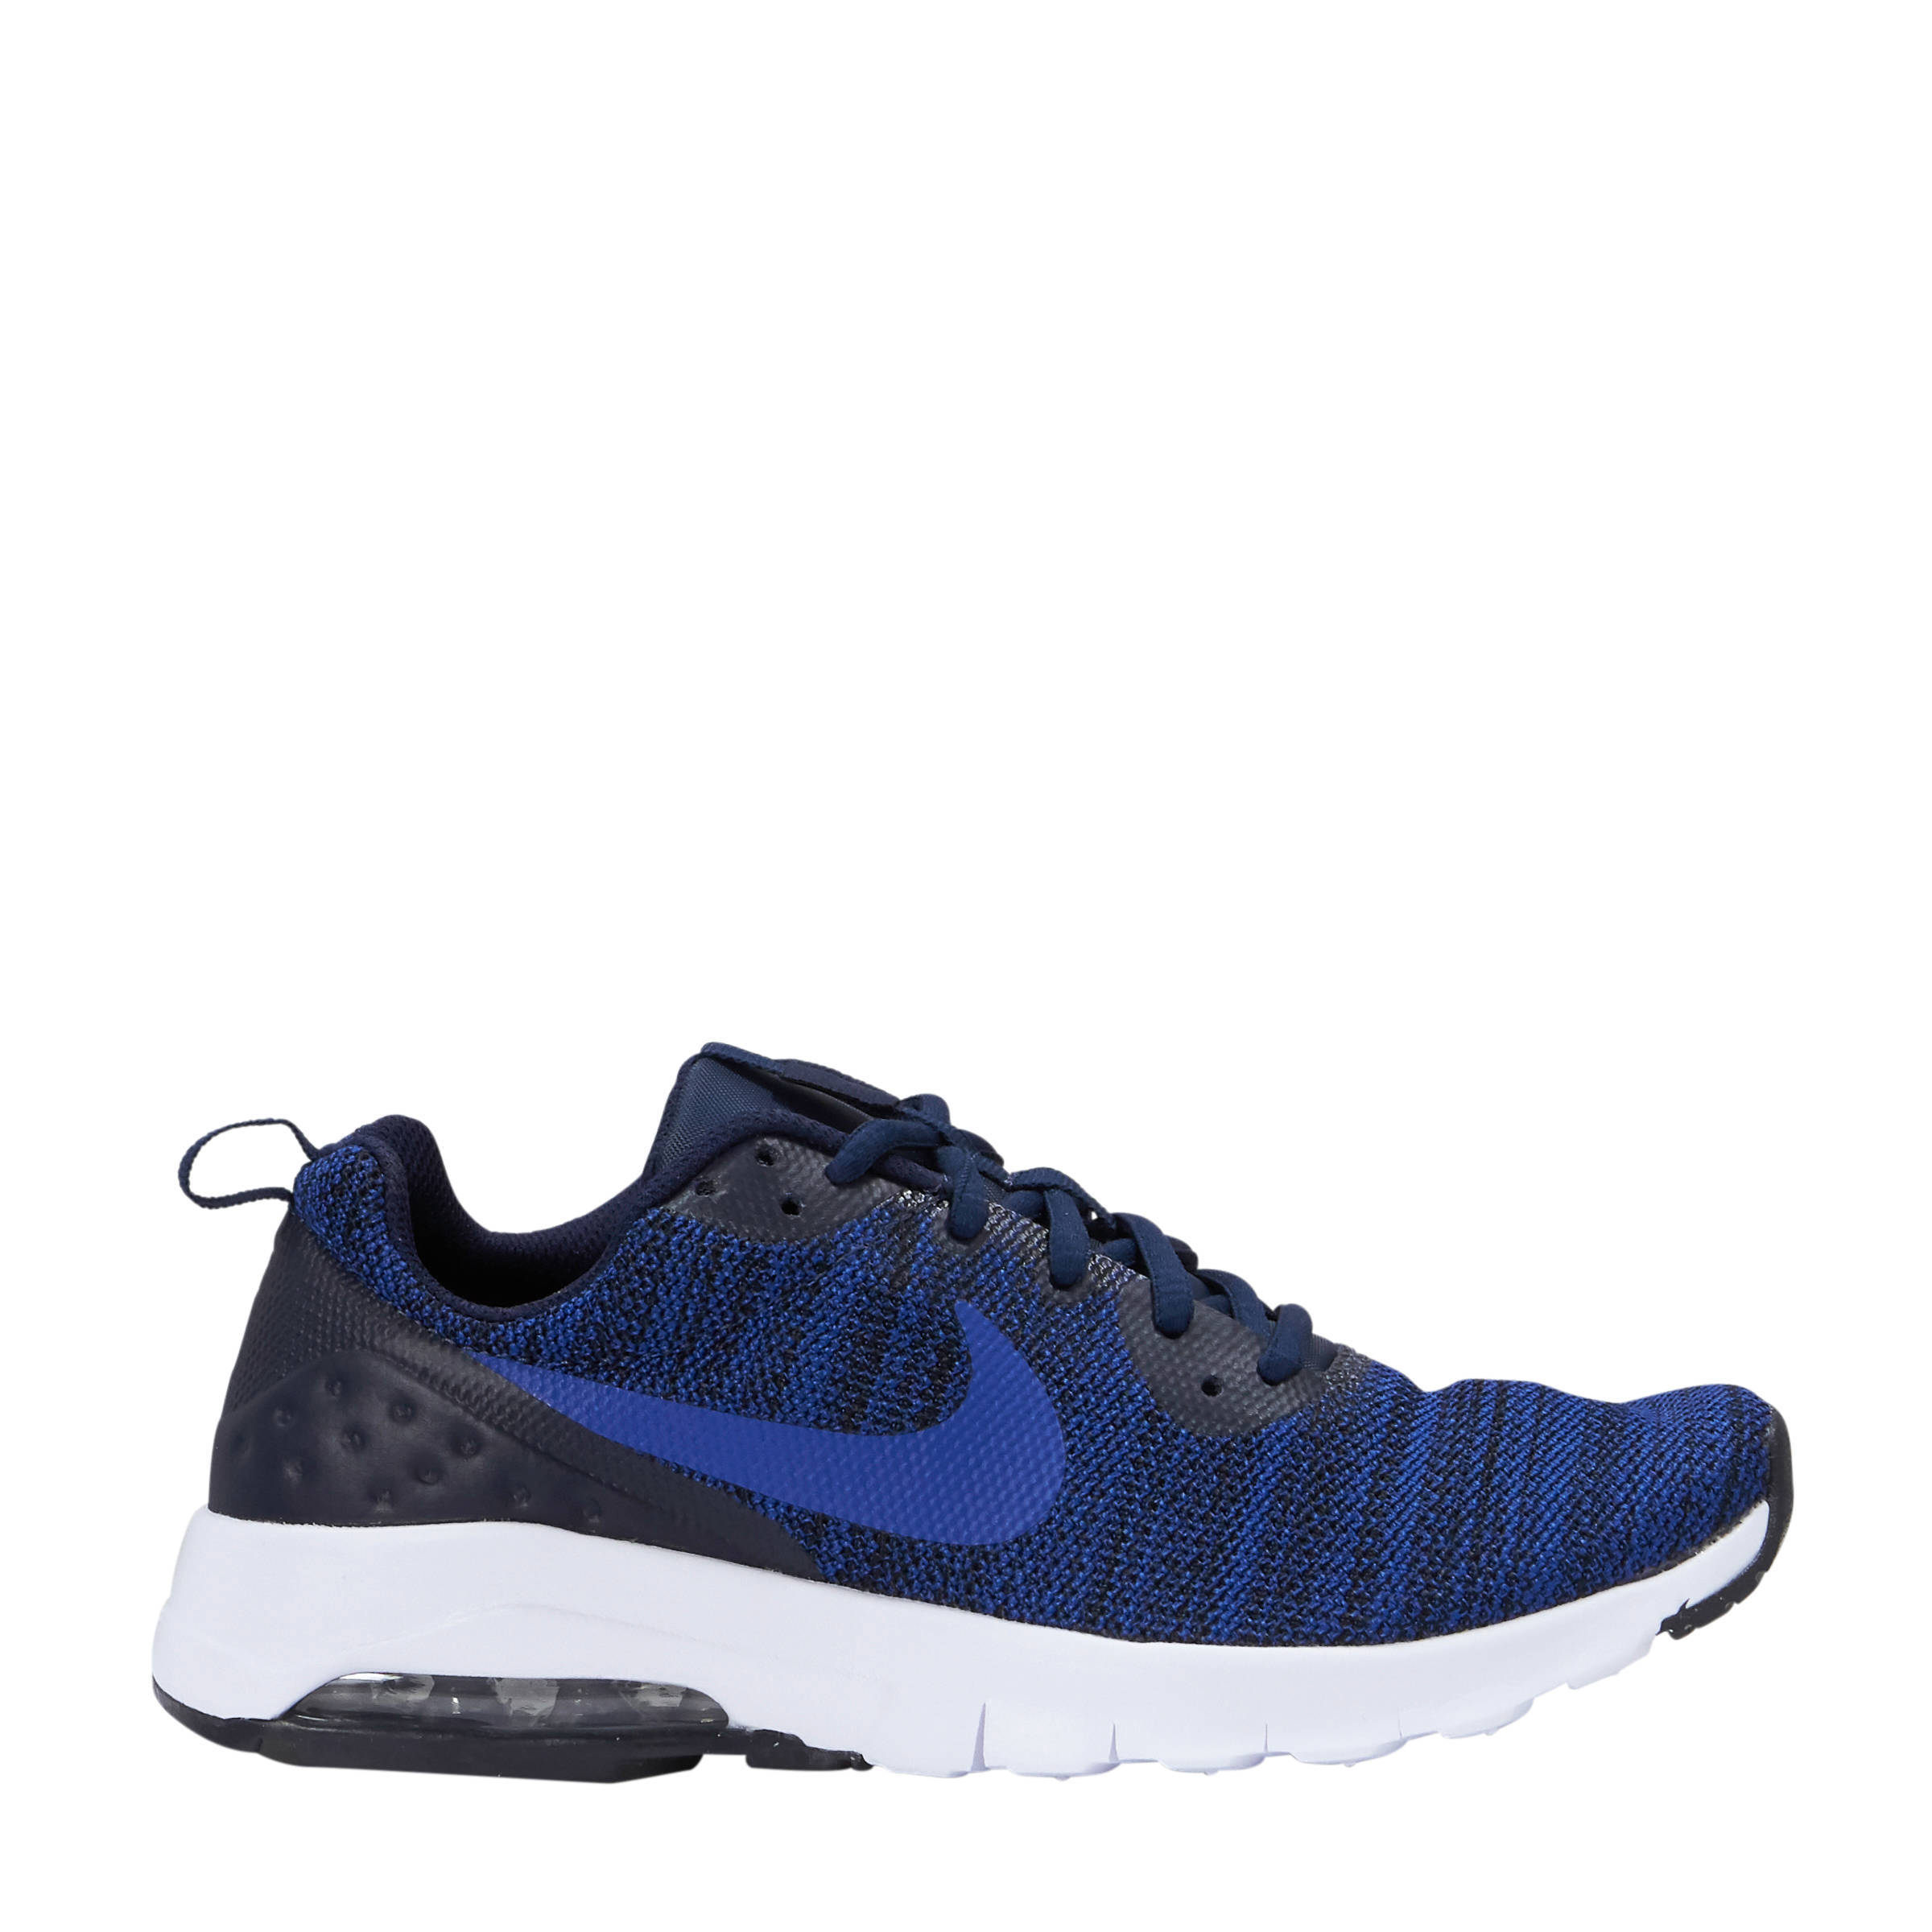 Donkerblauw Max Nike Air Lw Sneakers Wehkamp Motion R8TBUwBqW